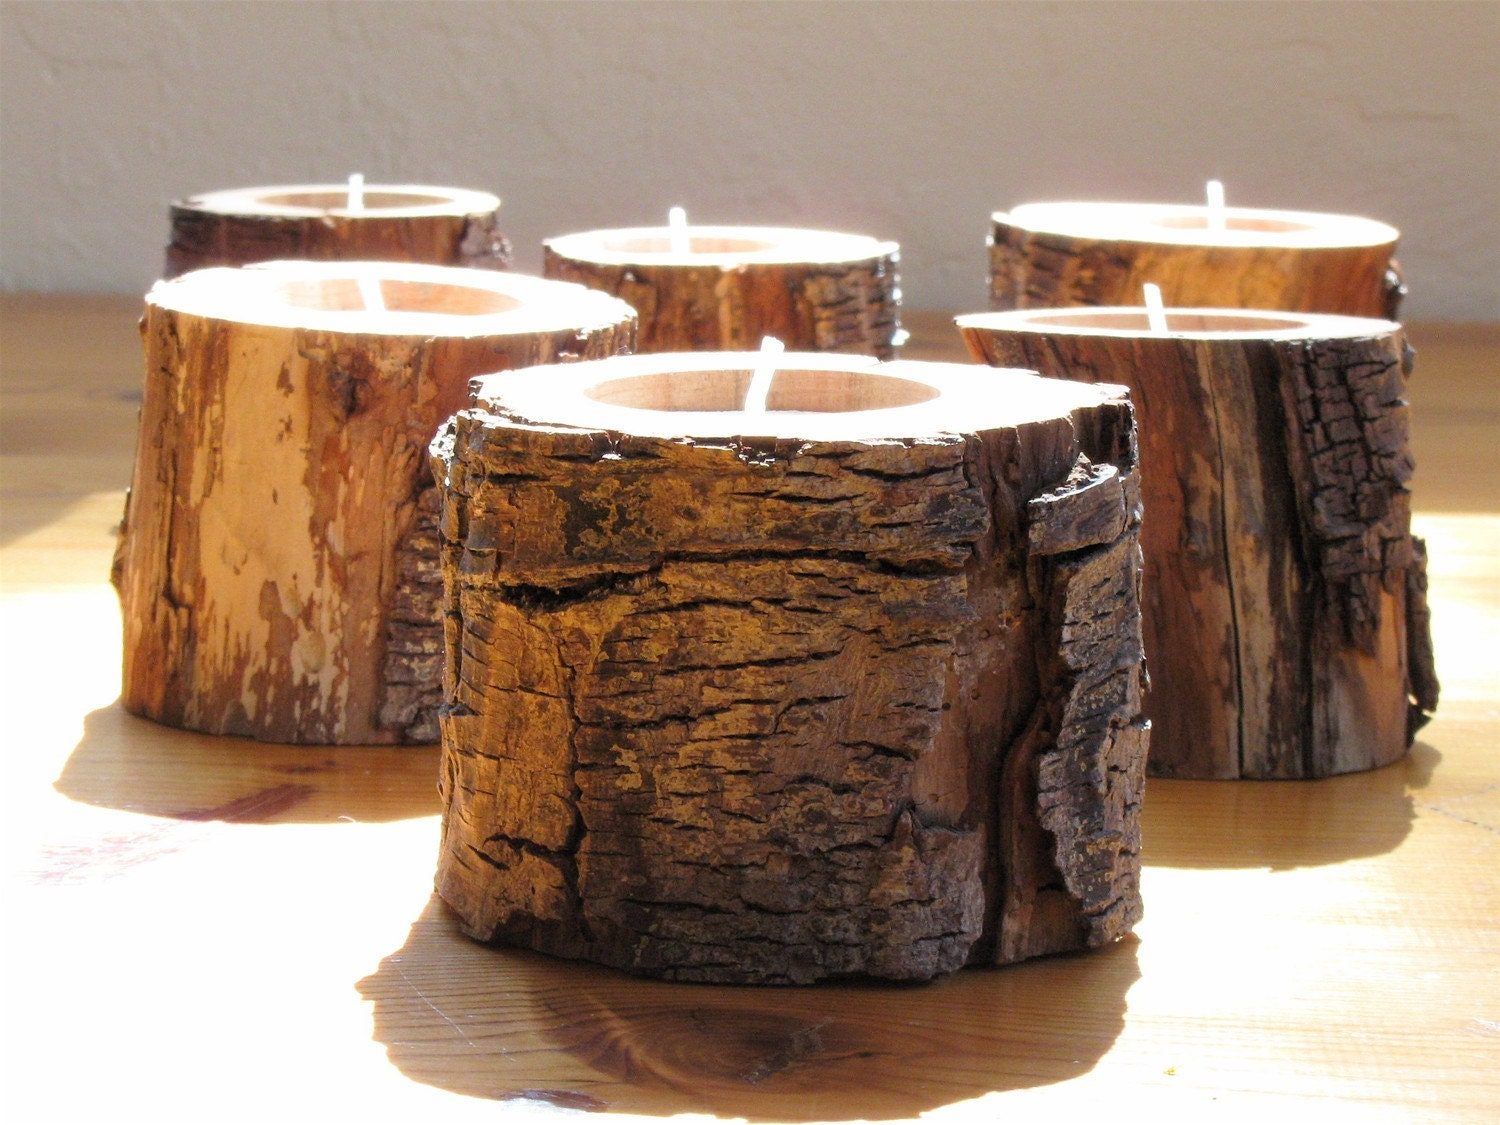 6 woodland driftwood candle holders eco friendly home decor Environmentally friendly decorations